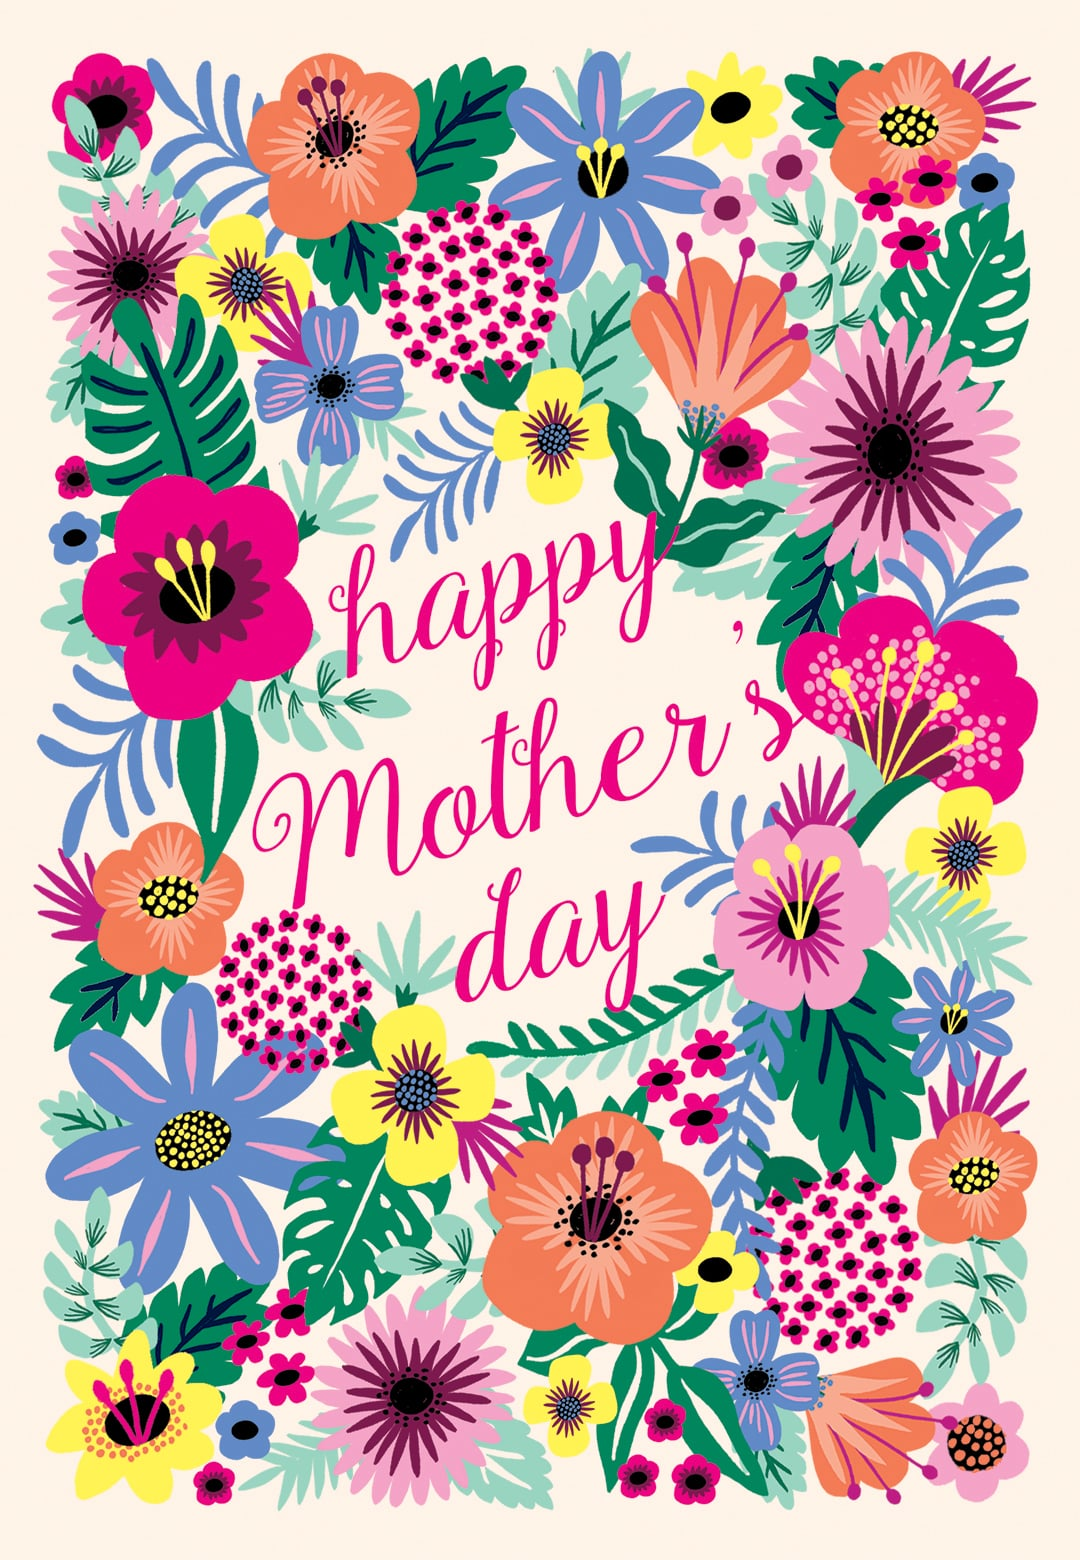 Whimsical Bouquet Printable Mother S Day Card 31 Printable Cards Right In Time For Mother S Day Popsugar Smart Living Photo 16